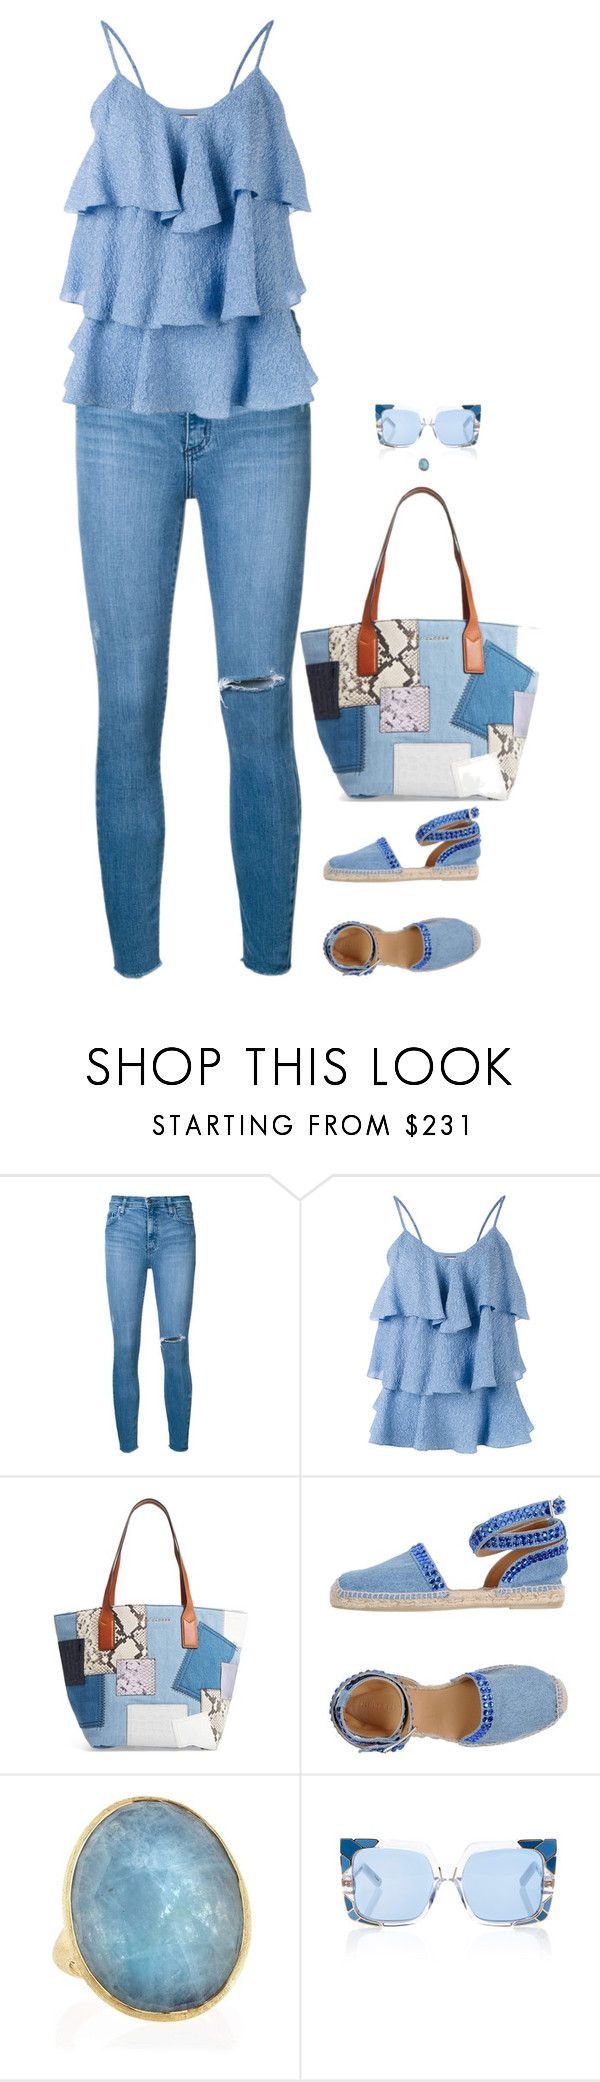 """Untitled #7850"" by miki006 ❤ liked on Polyvore featuring Nobody Denim, Paul & Joe, Marc Jacobs, Philipp Plein, Marco Bicego and Pared"